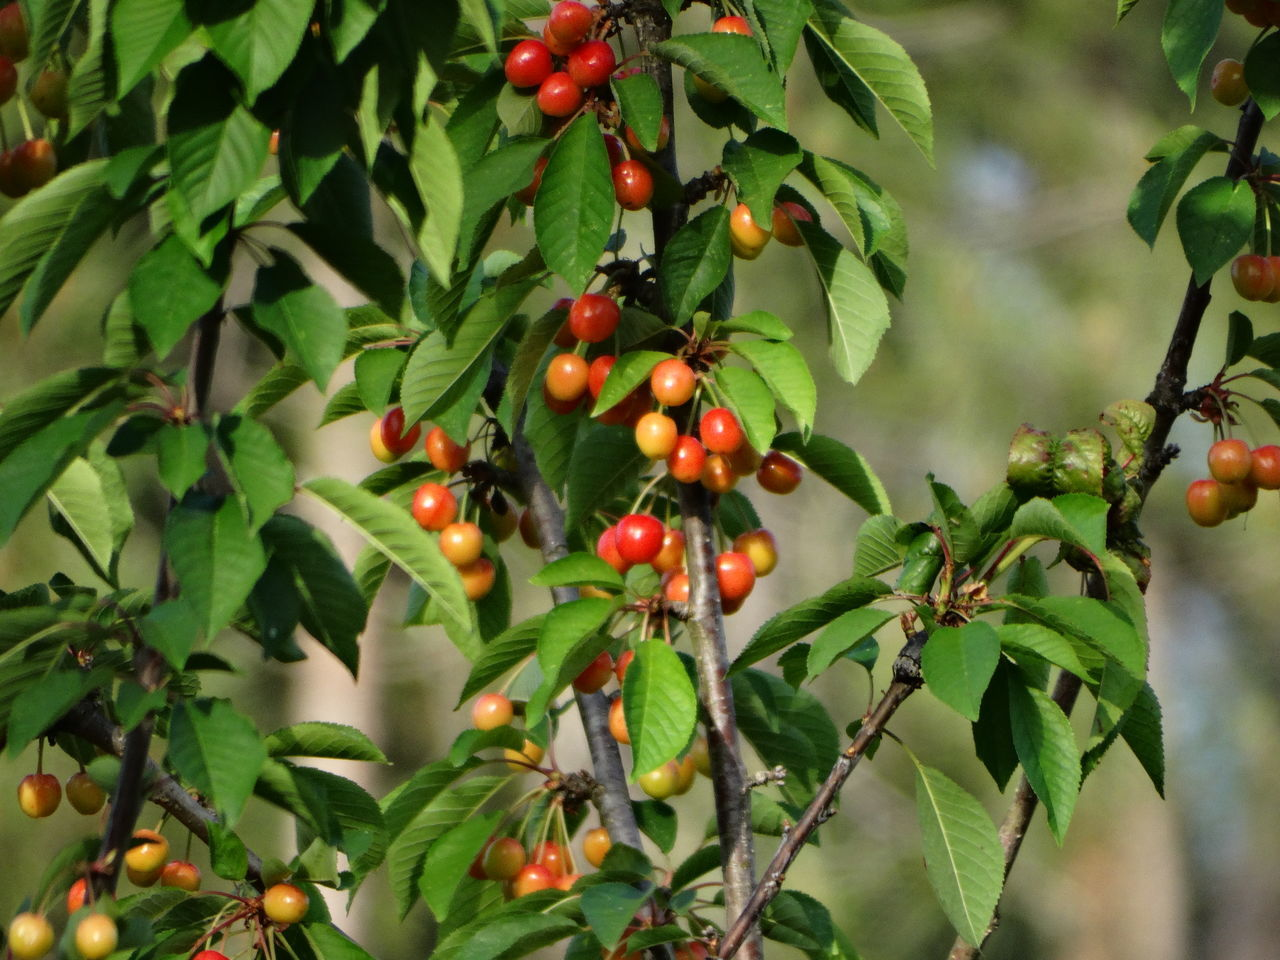 Beauty In Nature Branch Close-up Day Food Food And Drink Freshness Fruit Green Color Growing Growth Hanging Healthy Eating Leaf Nature No People Outdoors Red Rowanberry Tree